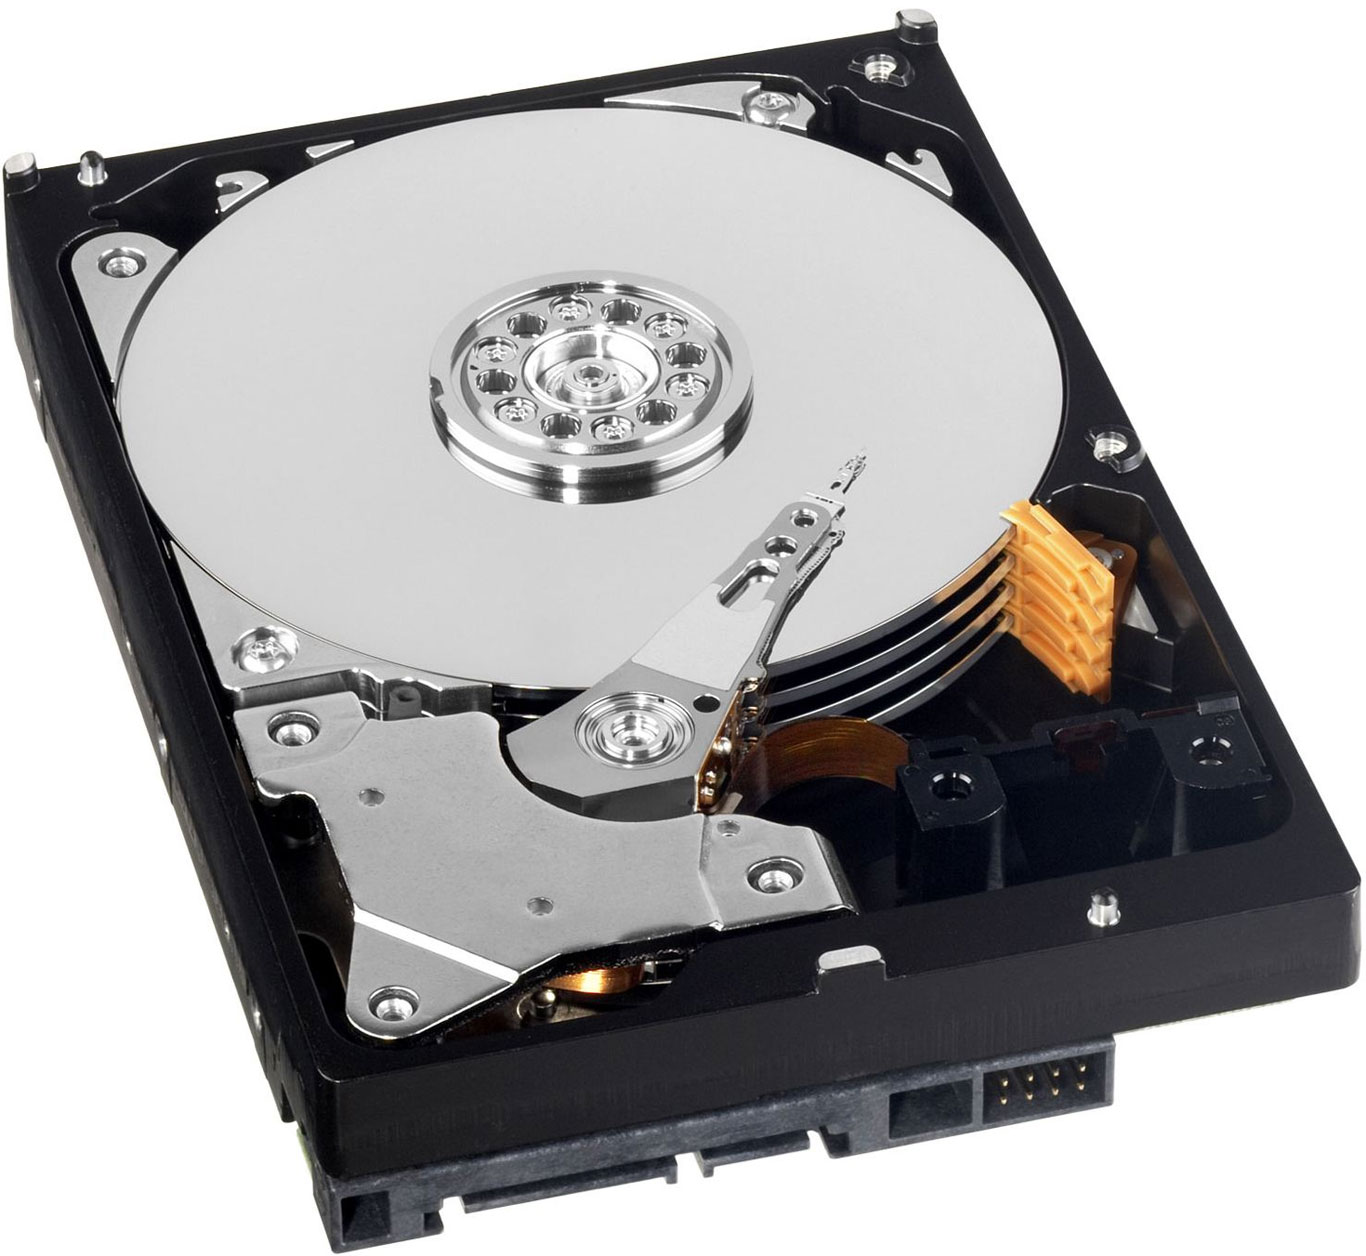 PC Sata 320GB HDD